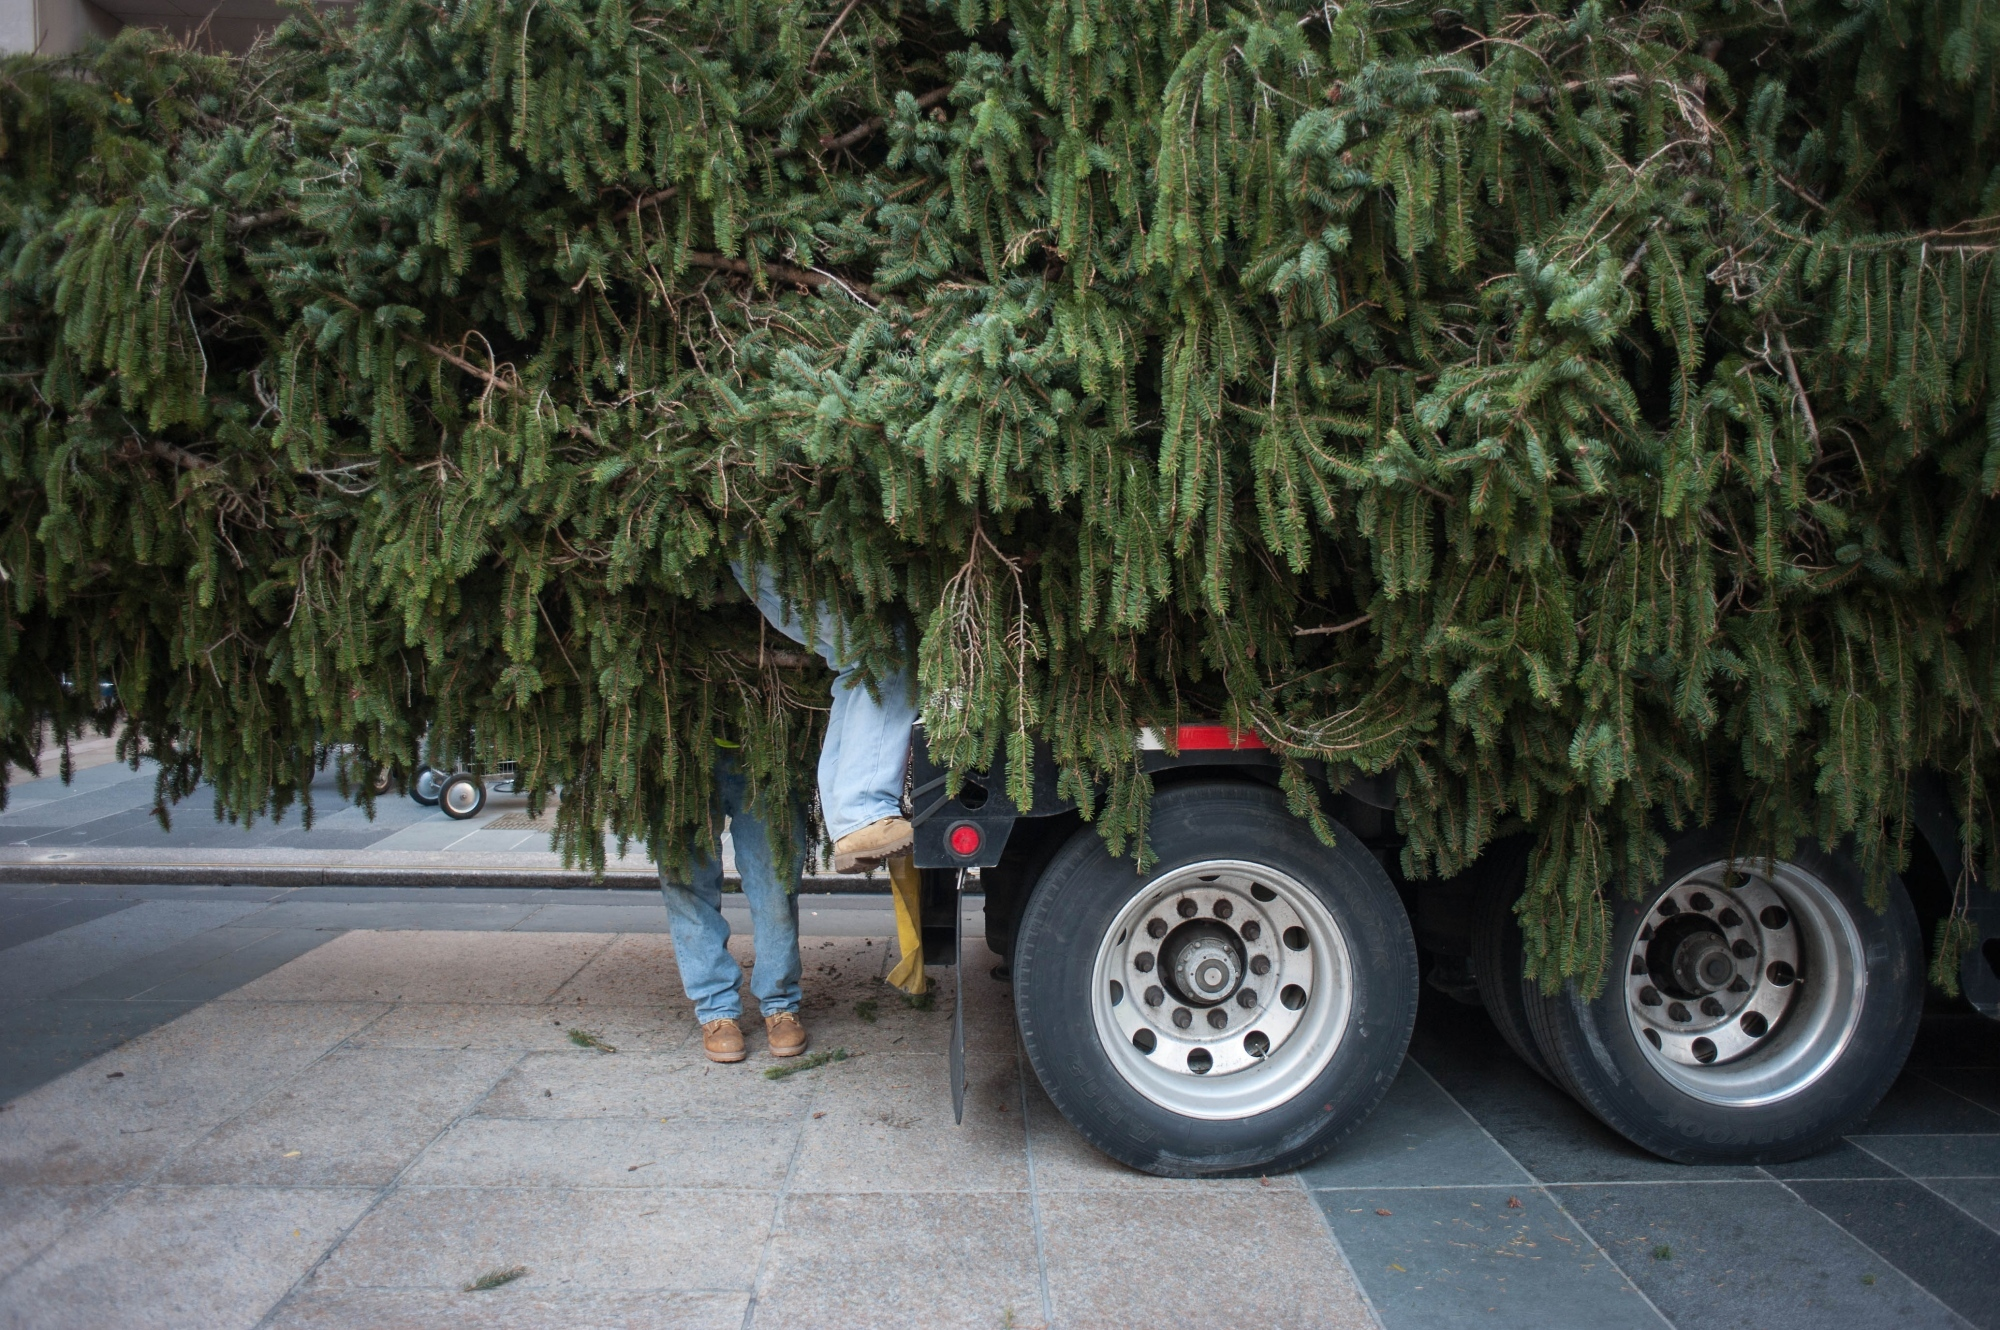 The Rockefeller Center Christmas Tree arrives on November 12th, 2016, at 7A.M.The tree is 94 ft tall and 56 ft wide, weighing at around 14 tons. As soon as the tree arrives onto Rockefeller Plaza, workers climb in to cut off the ropes.